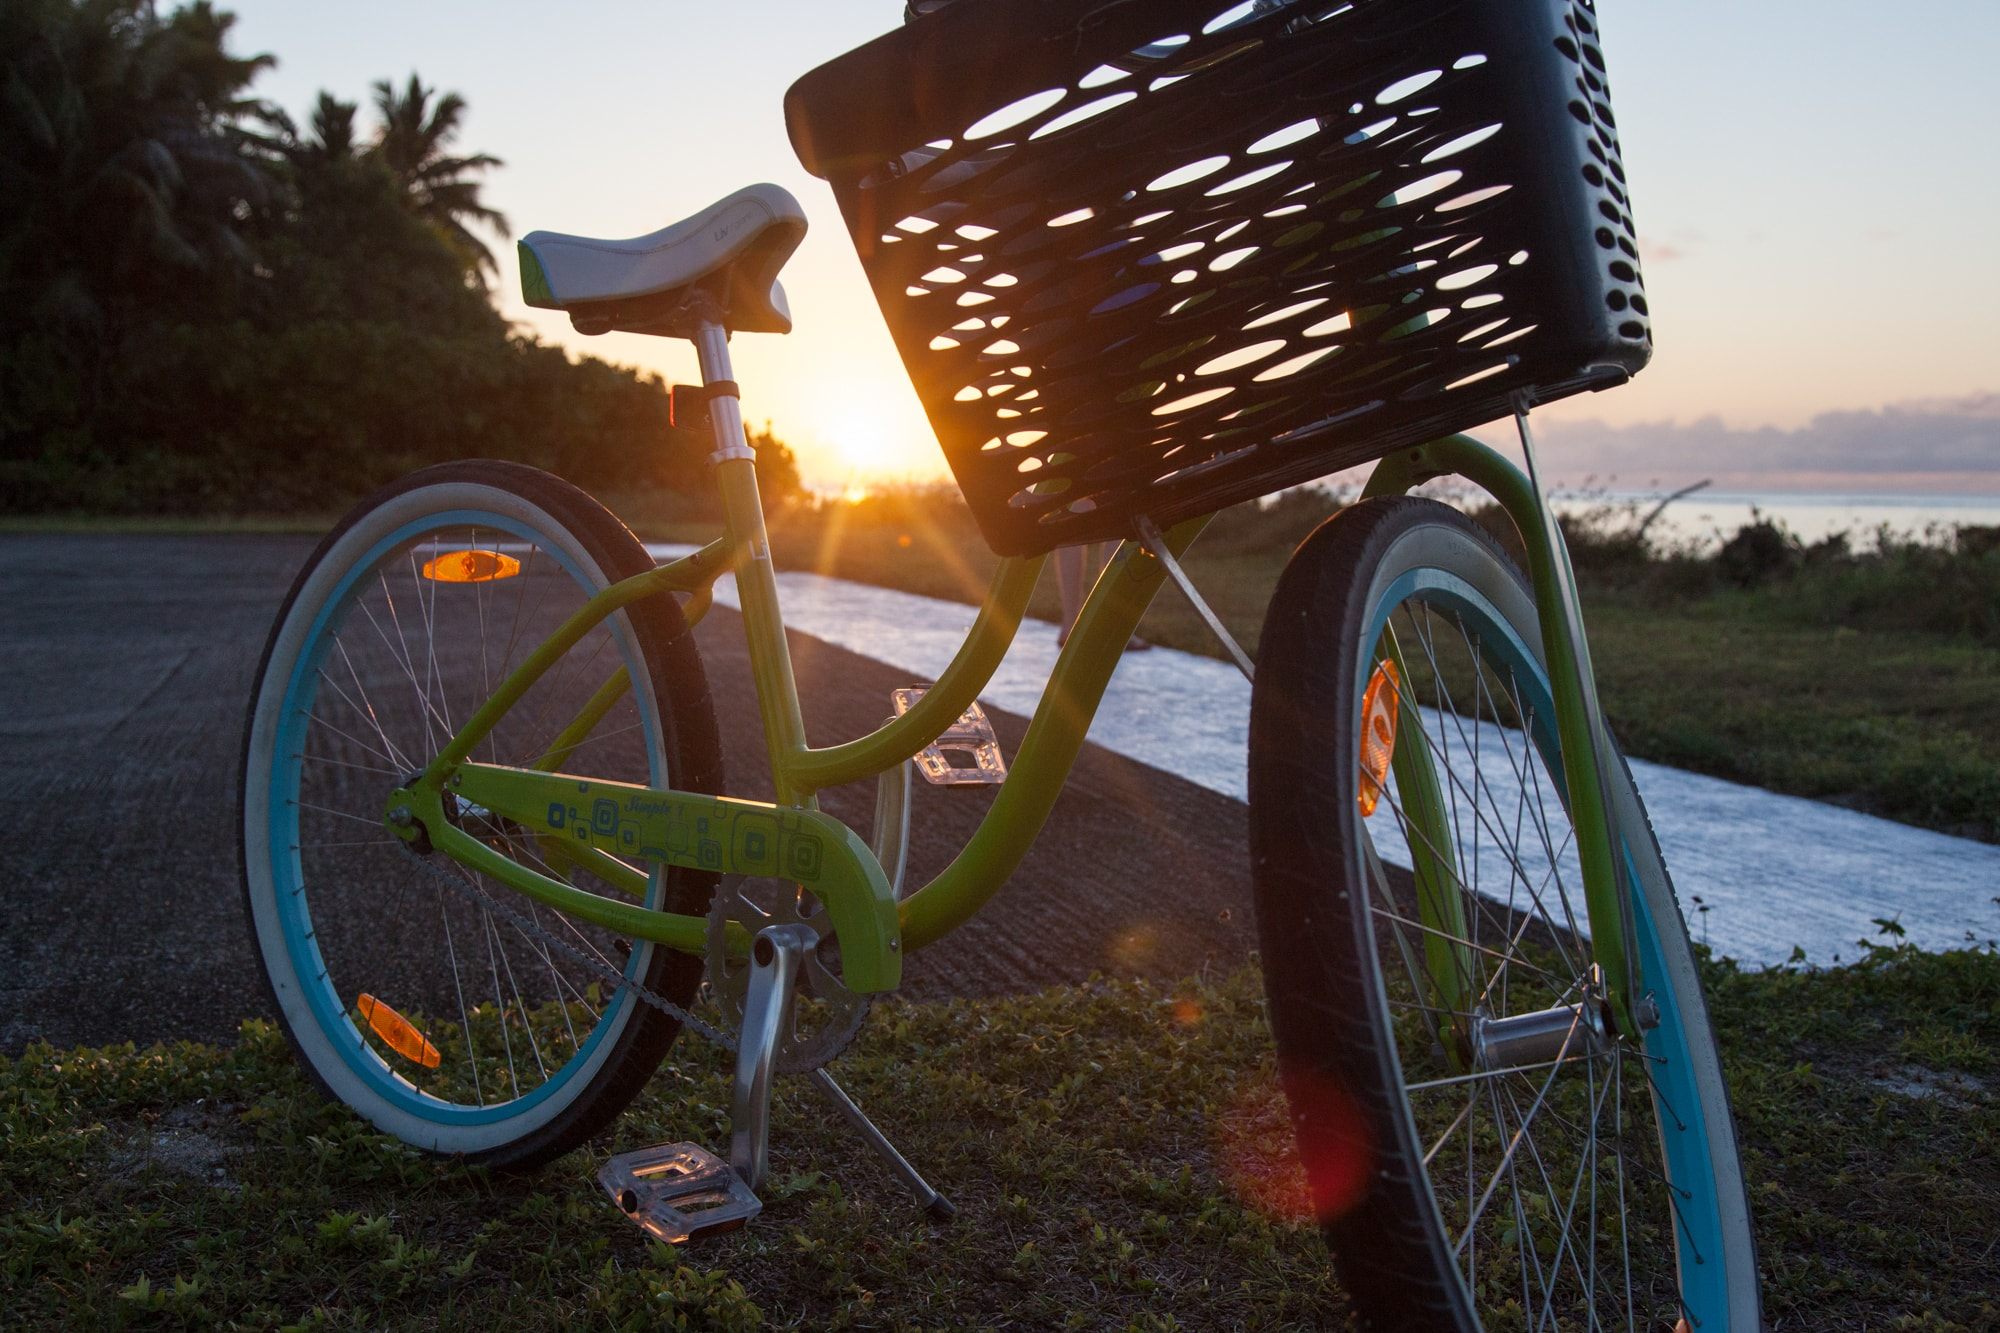 Cycling at sunset.   © image courtesy of www.goexploreseychelles.com